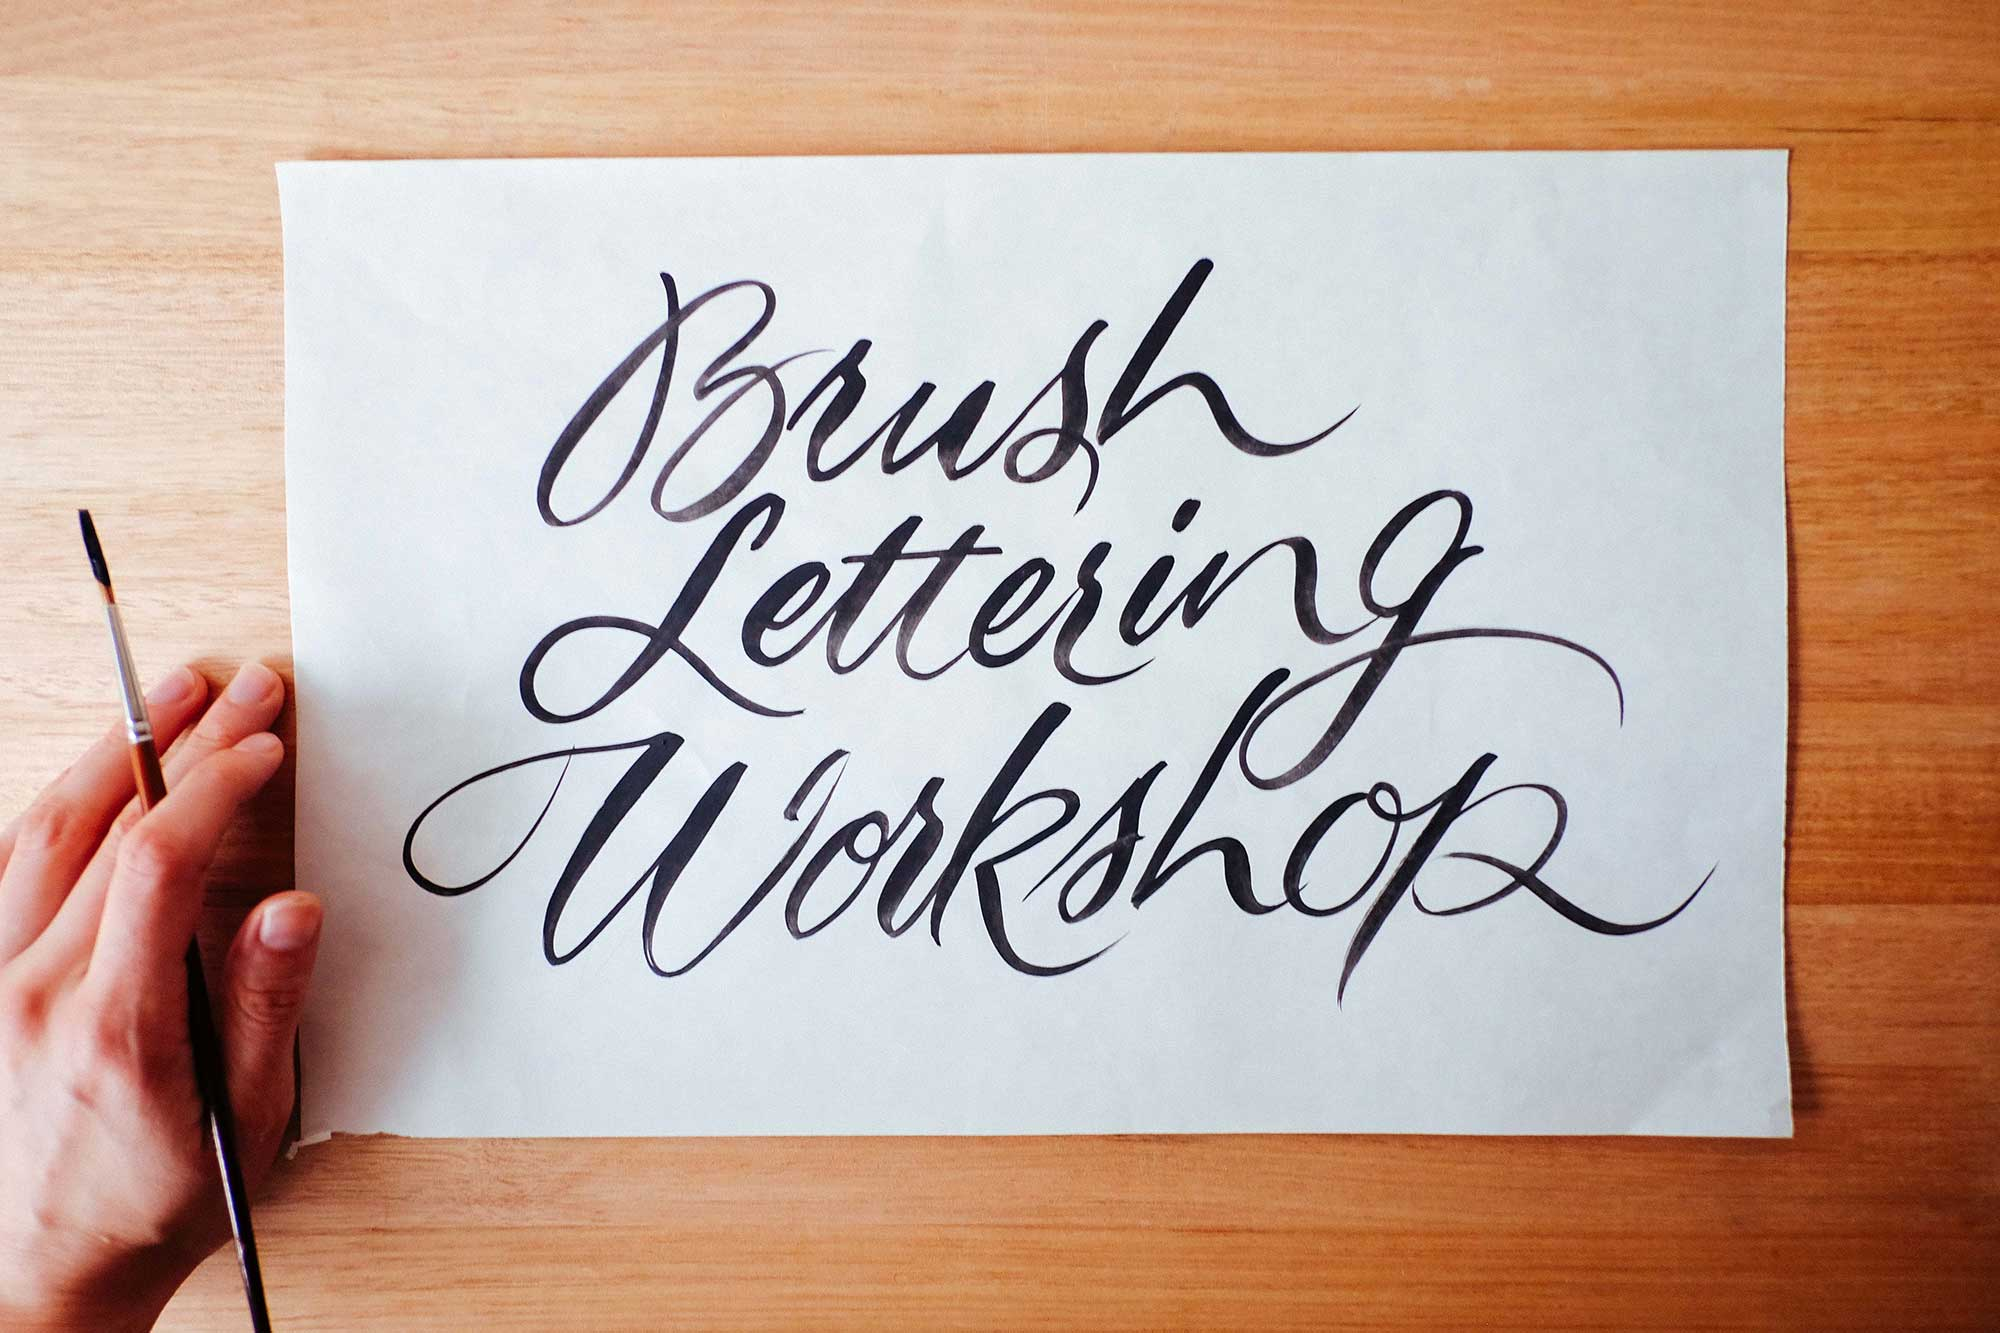 Brush Lettering Workshop, Melbourne 6th-7th July 2019